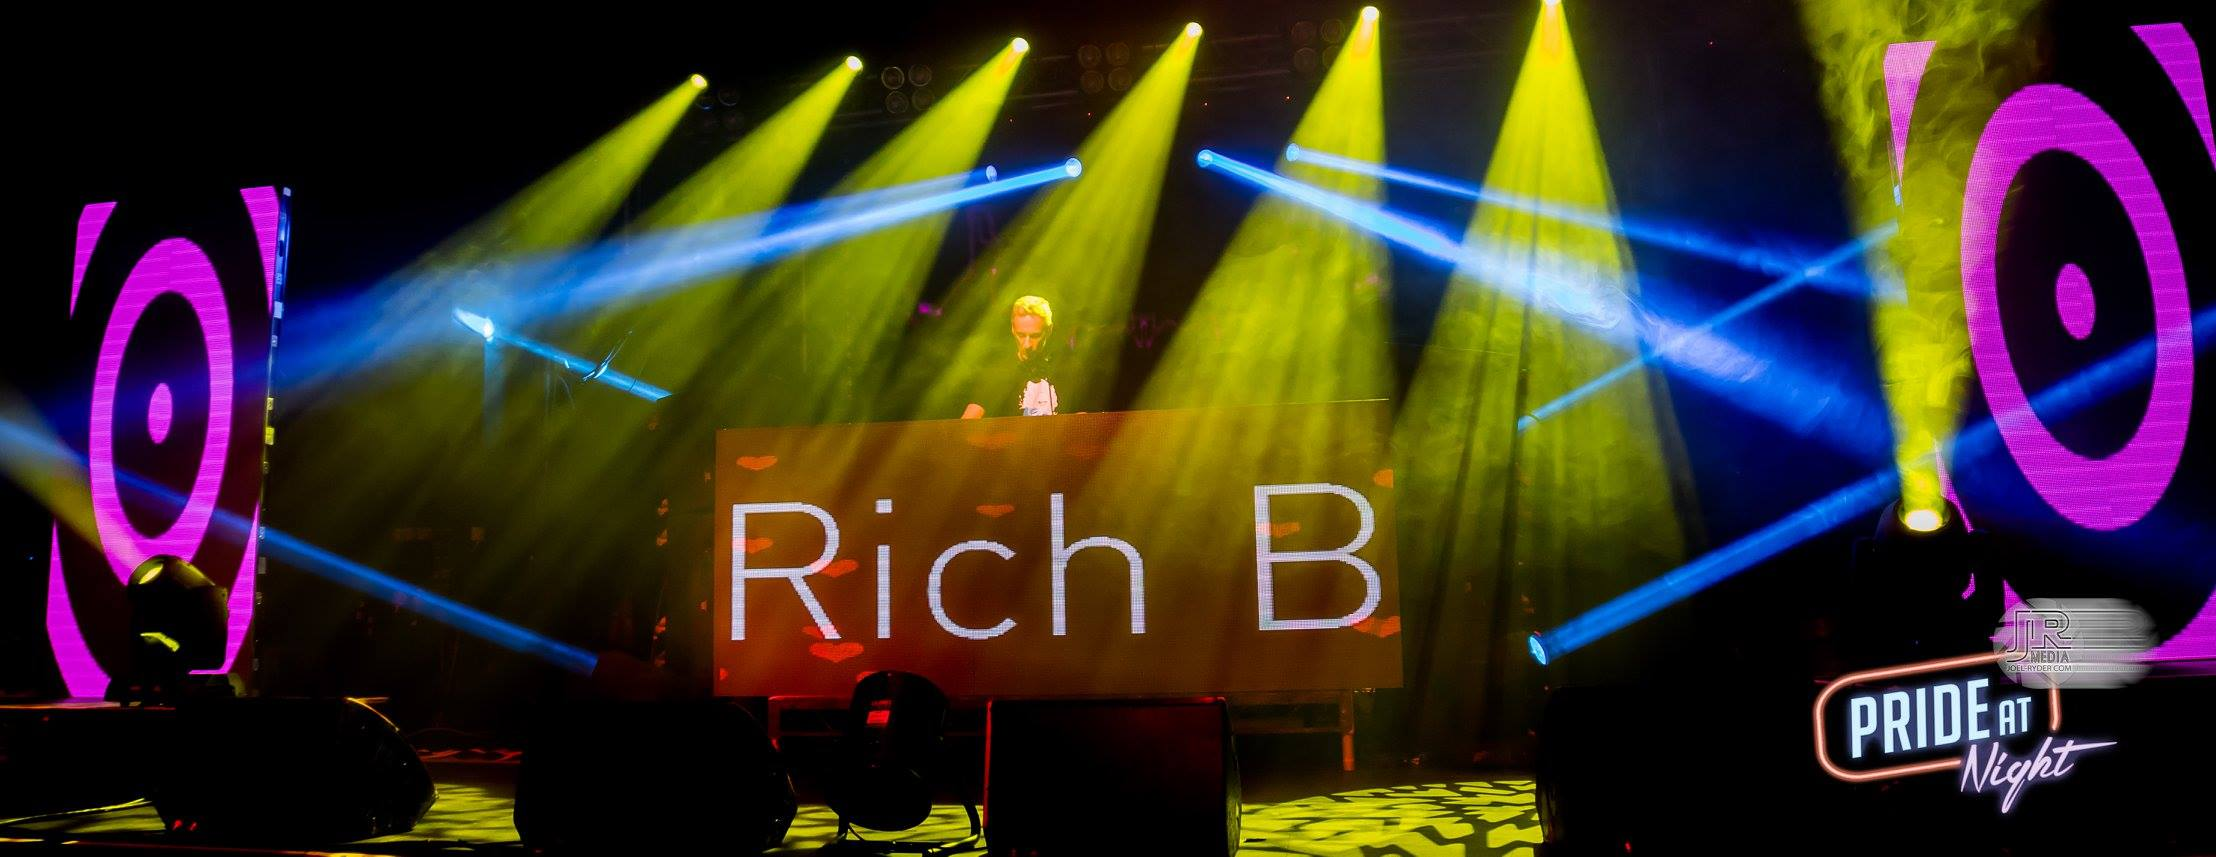 Rich B at Pride At Night June 2016 11